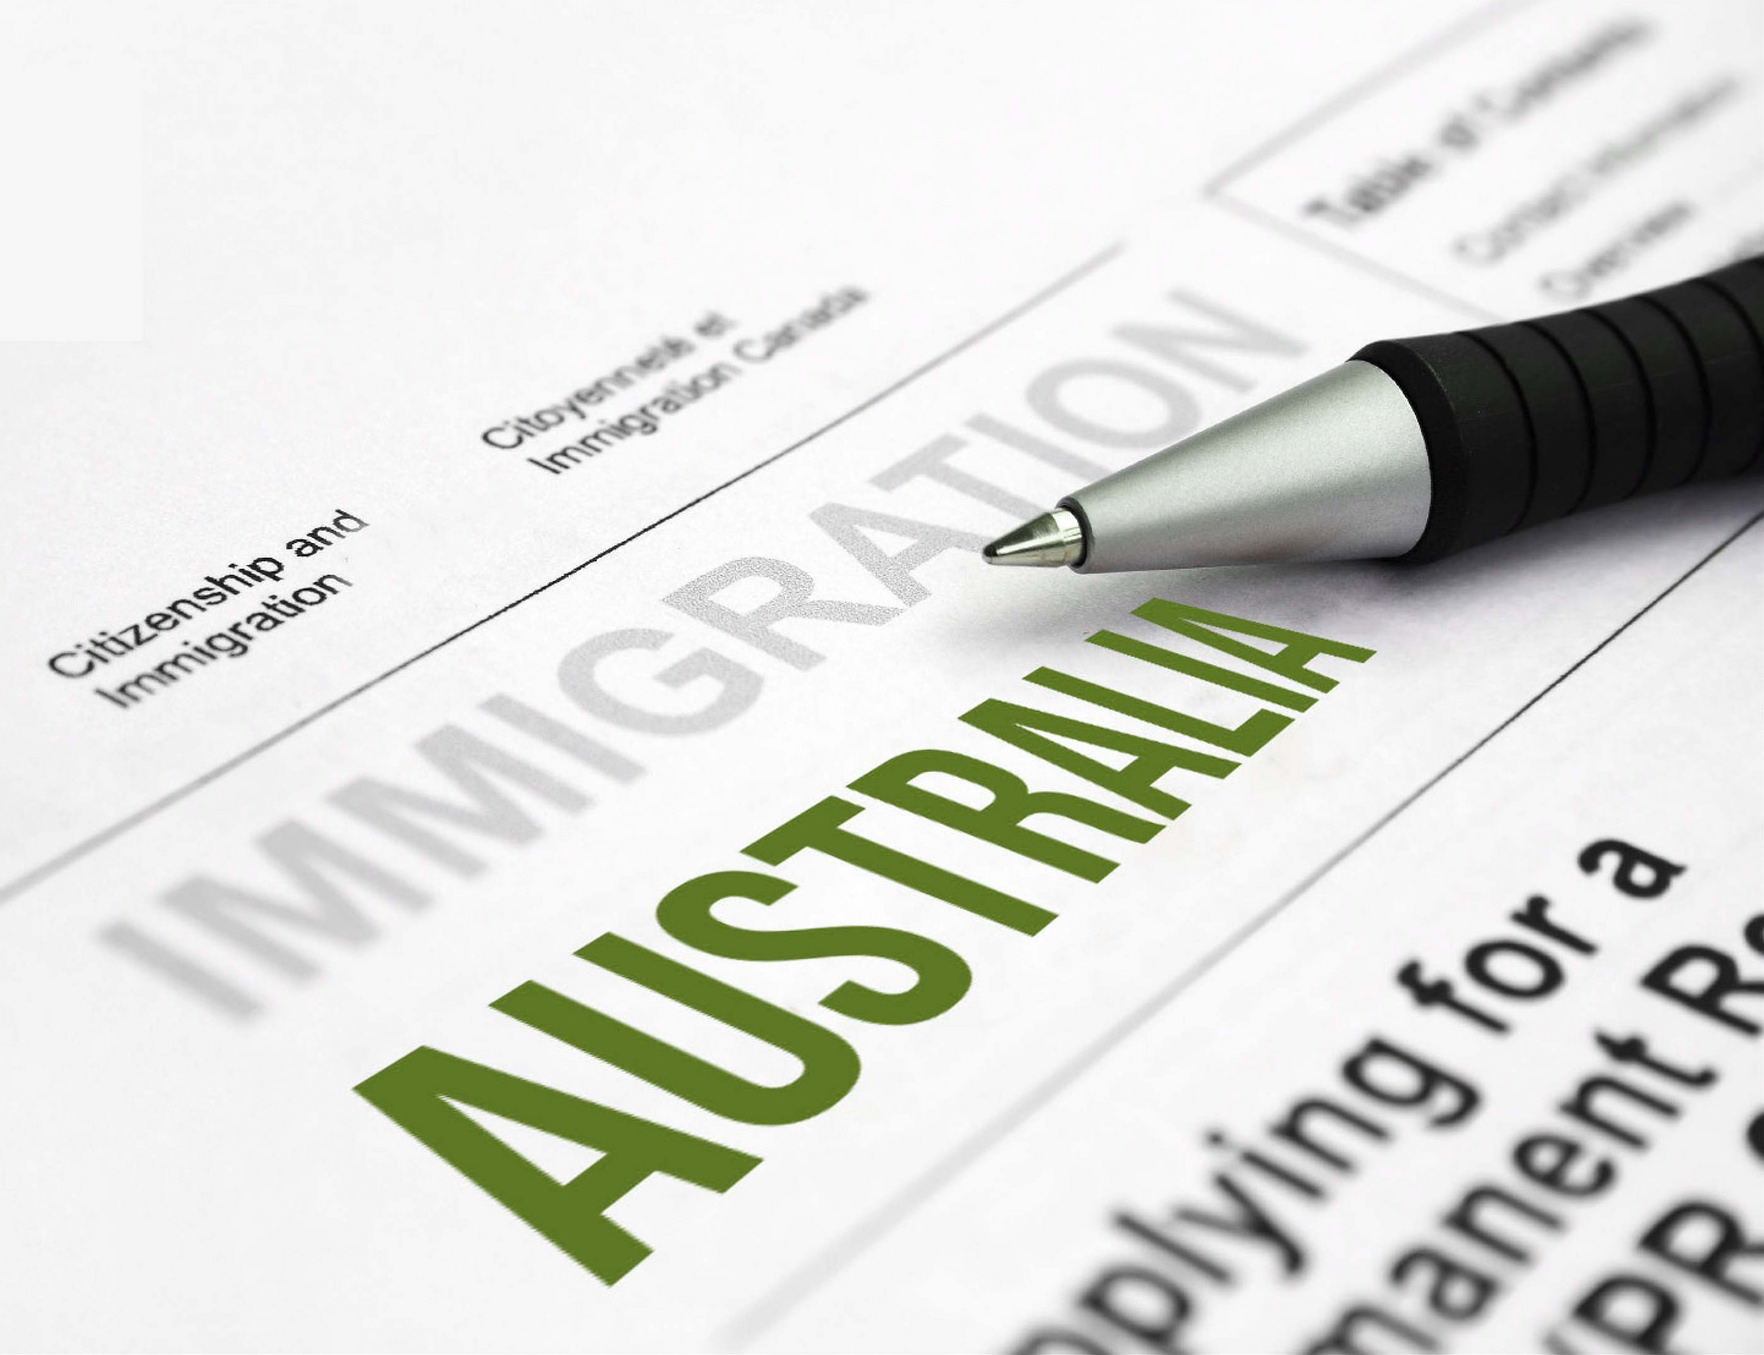 how to apply for tax return extension australia